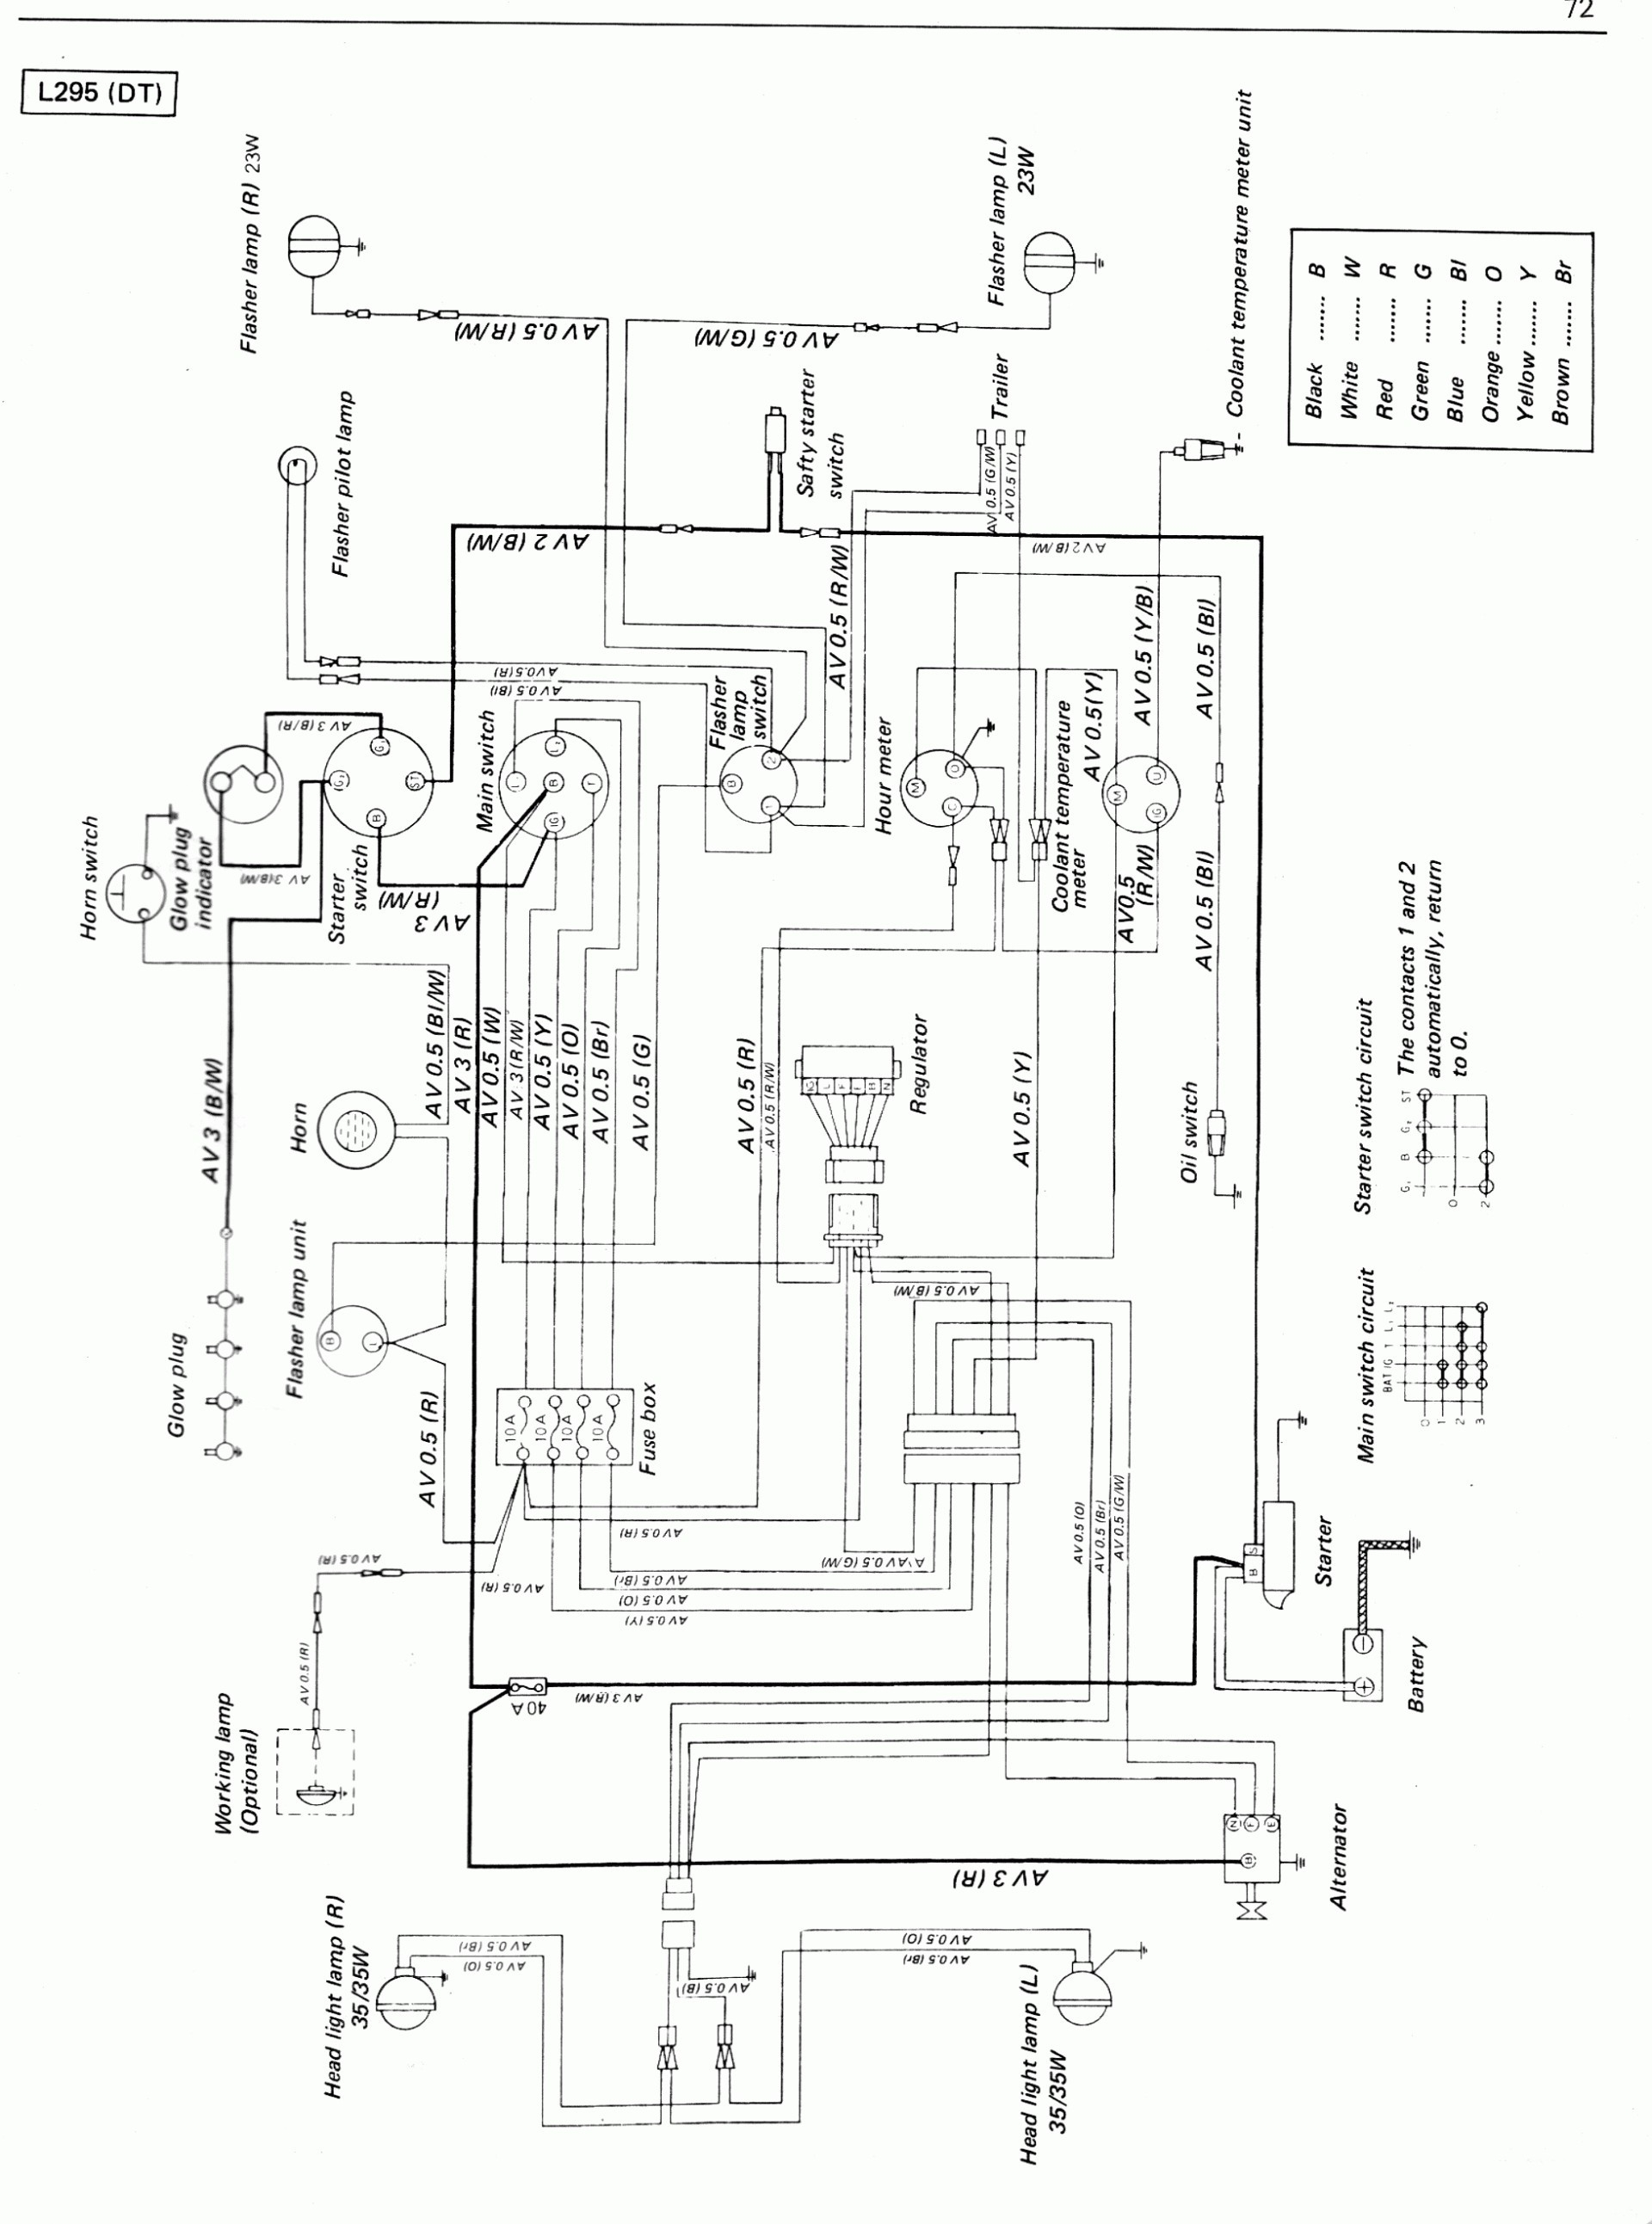 [DIAGRAM_38IS]  Kubota M6800 Wiring Diagram - Fuse Box On Motorcycle for Wiring Diagram  Schematics | L5740 Kubota Wiring Diagram |  | Wiring Diagram Schematics